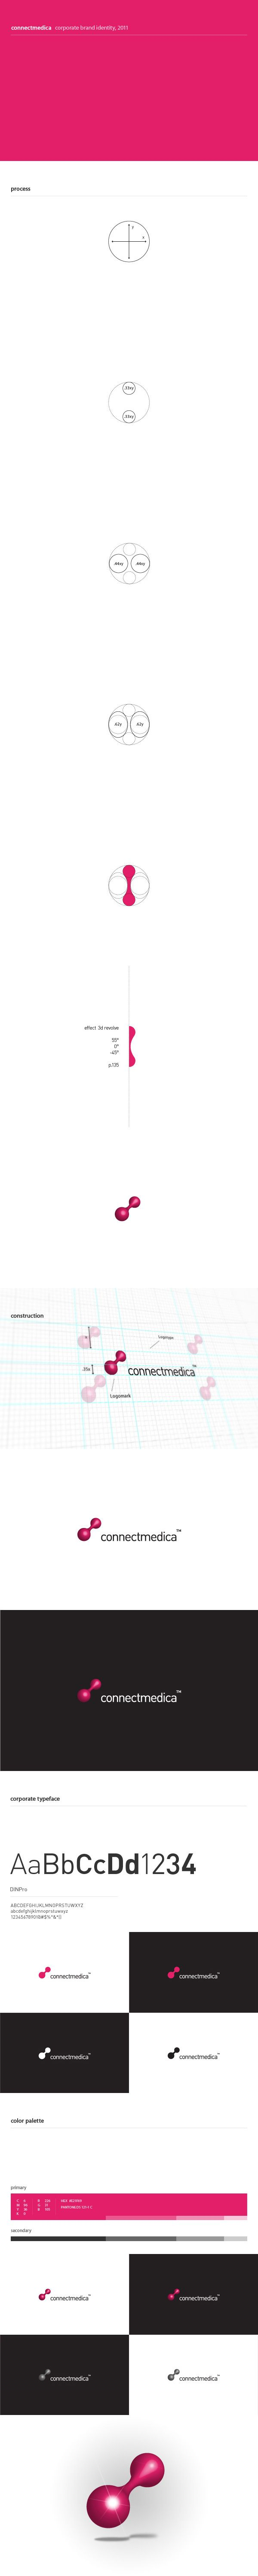 Logo design for ConnectMedica